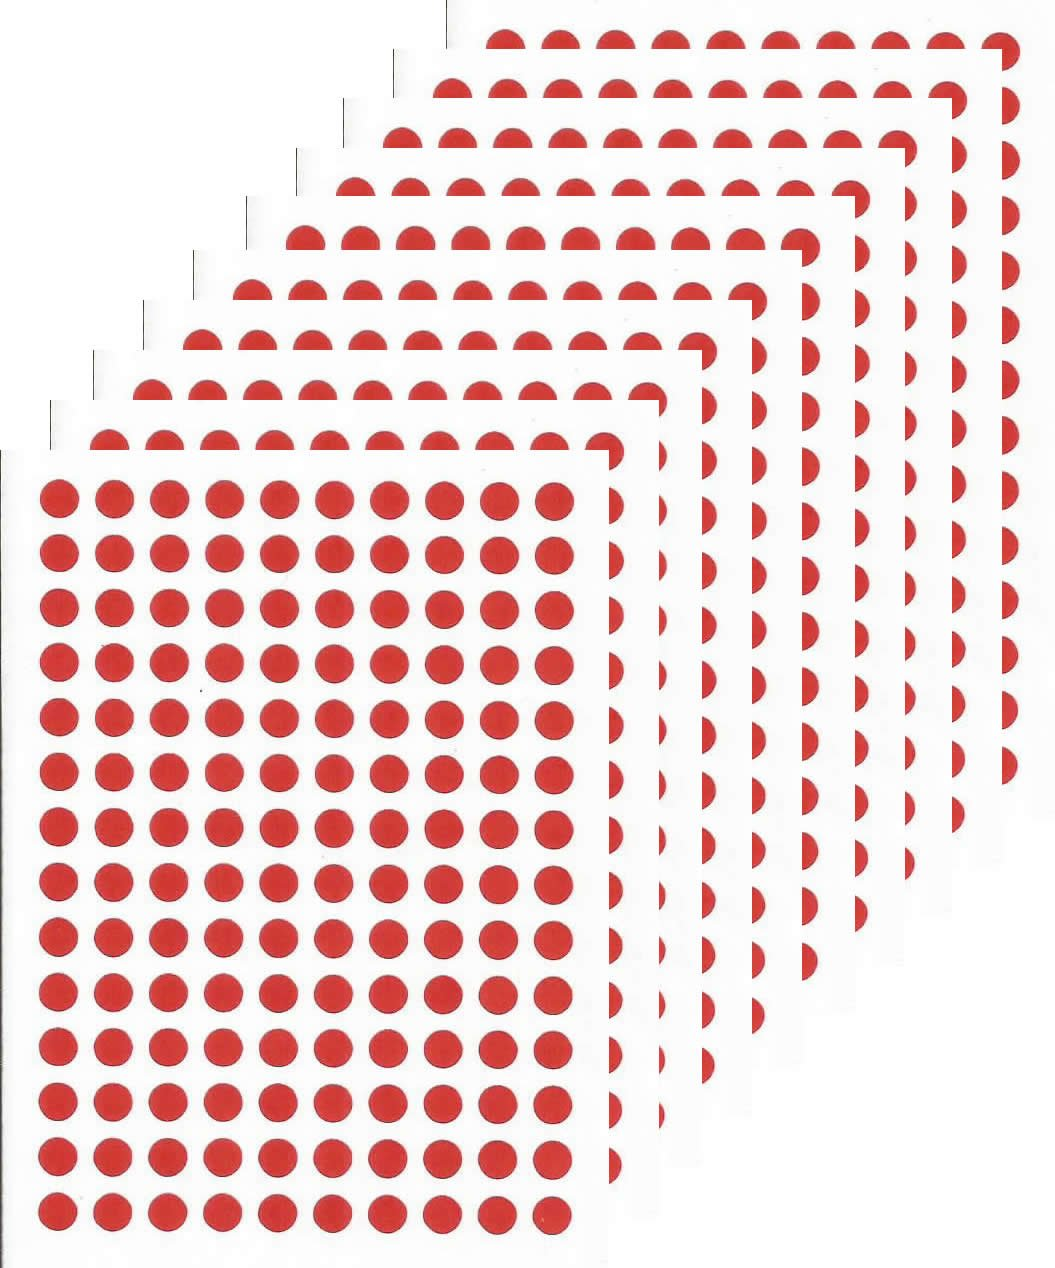 RED 1400 Round Stickers by Plannerworld Very Small 5mm Wall Planner Stickers